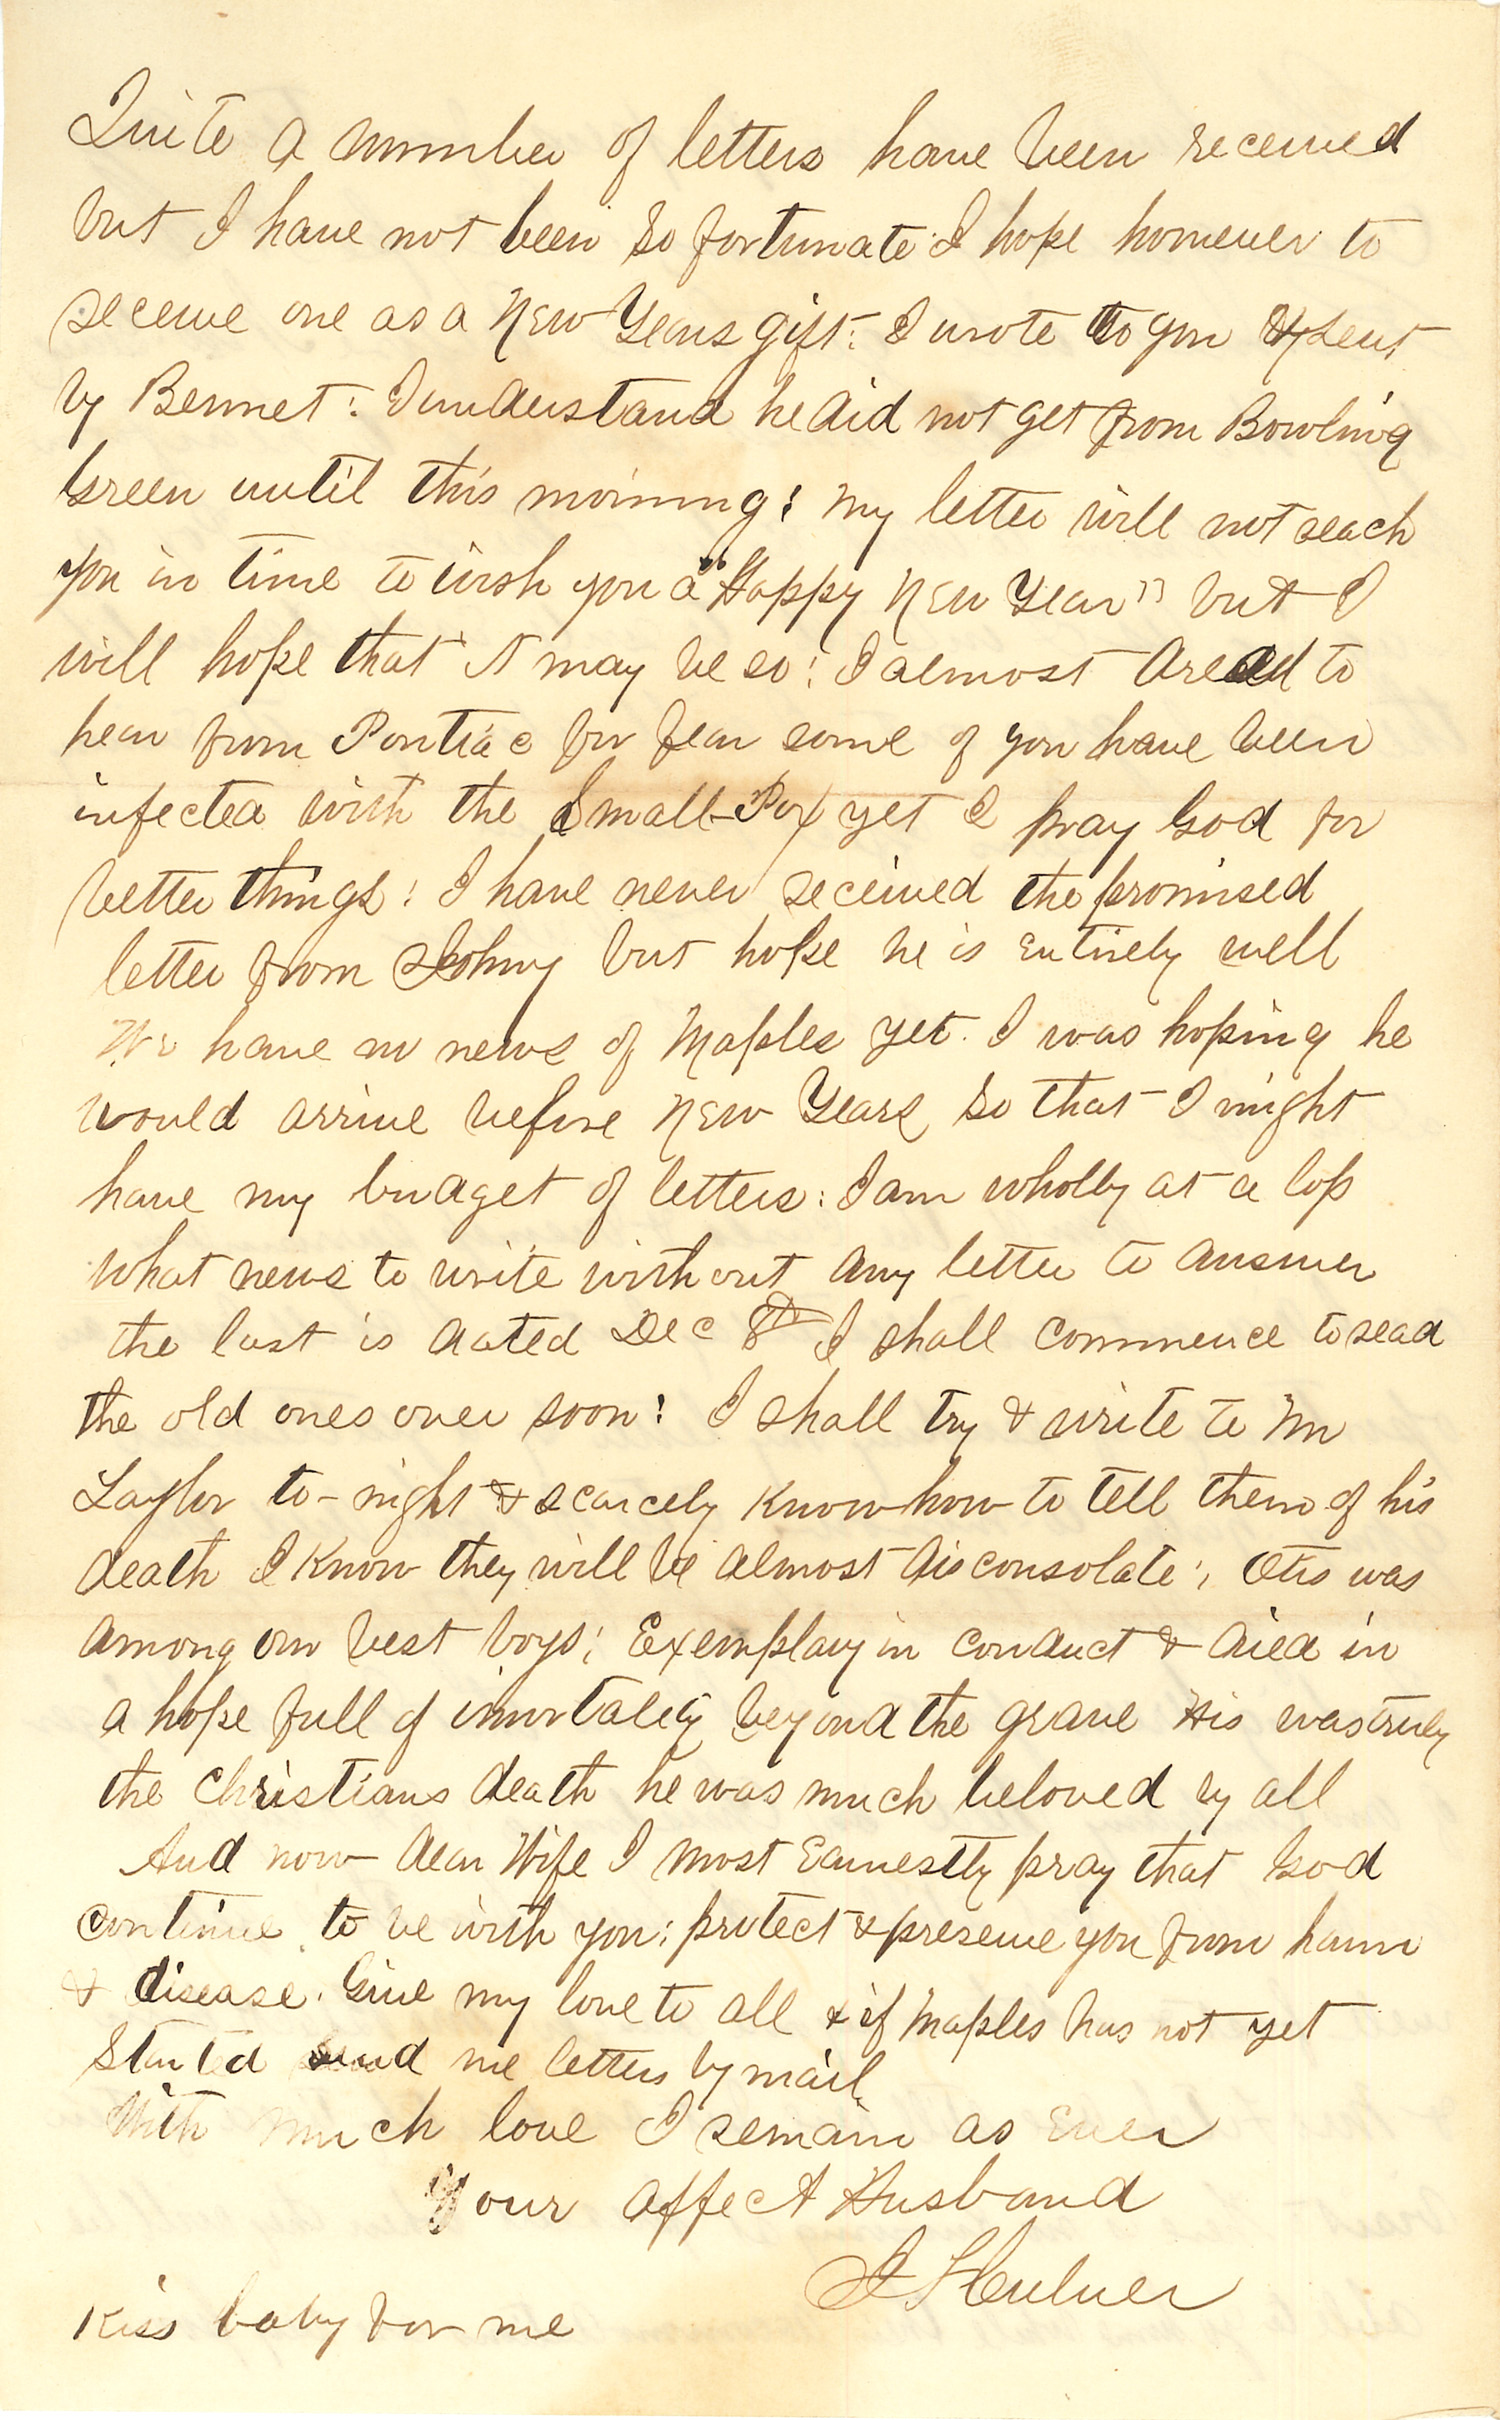 Joseph Culver Letter, December 30, 1862, Page 2